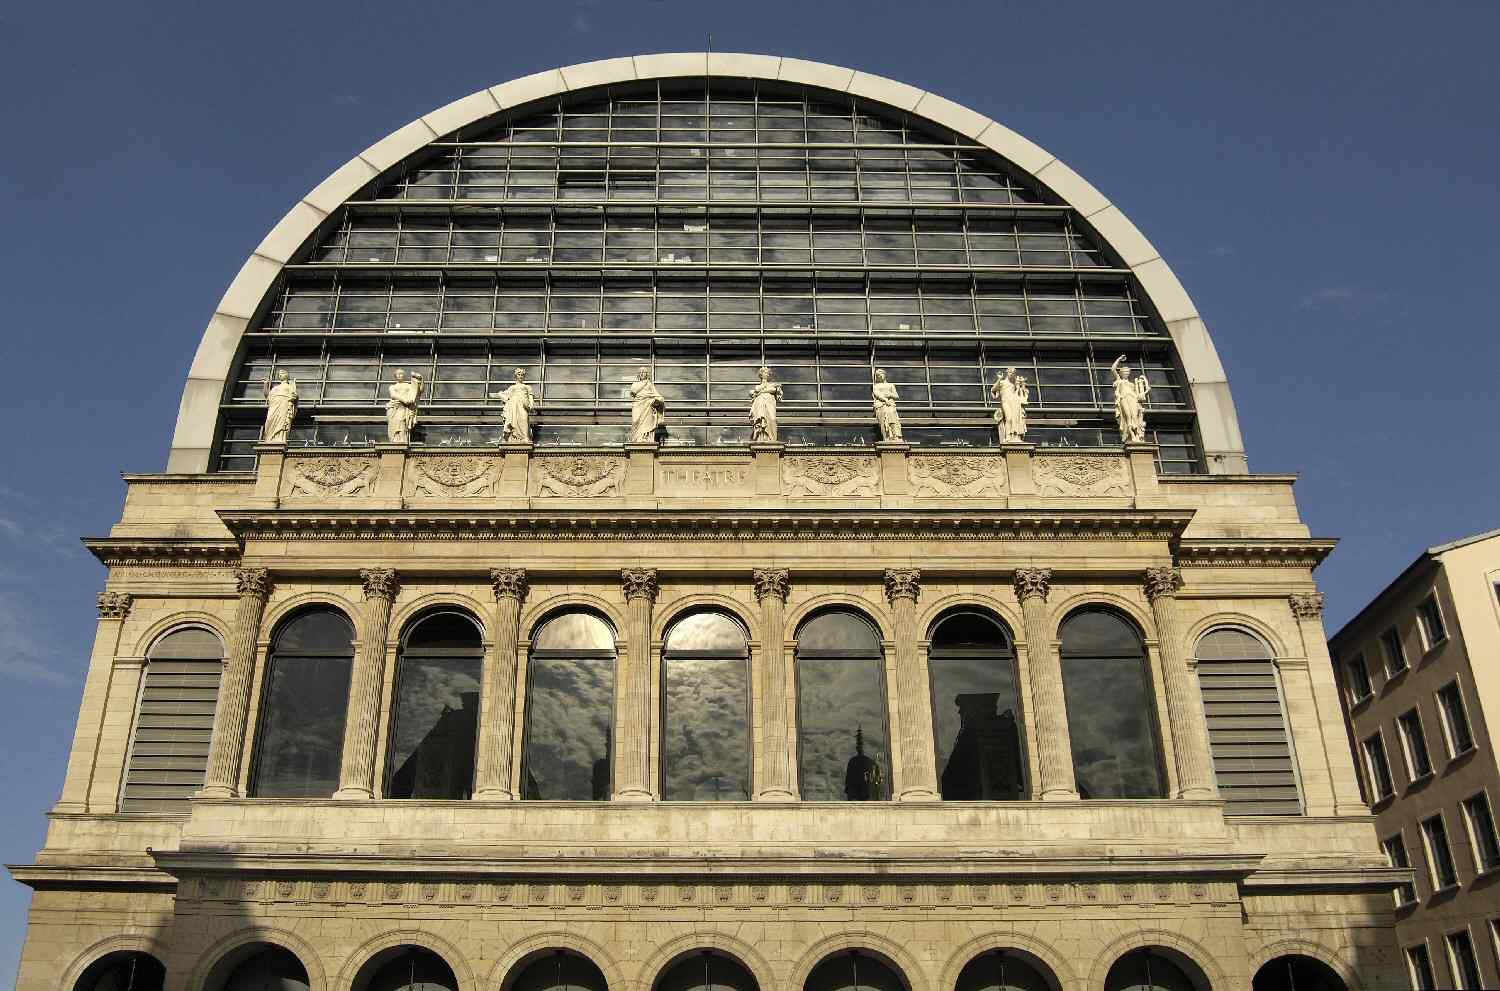 Renovated Lyons Opera House by Jean Nouvel added a glass roof but kept the 1831 facade.